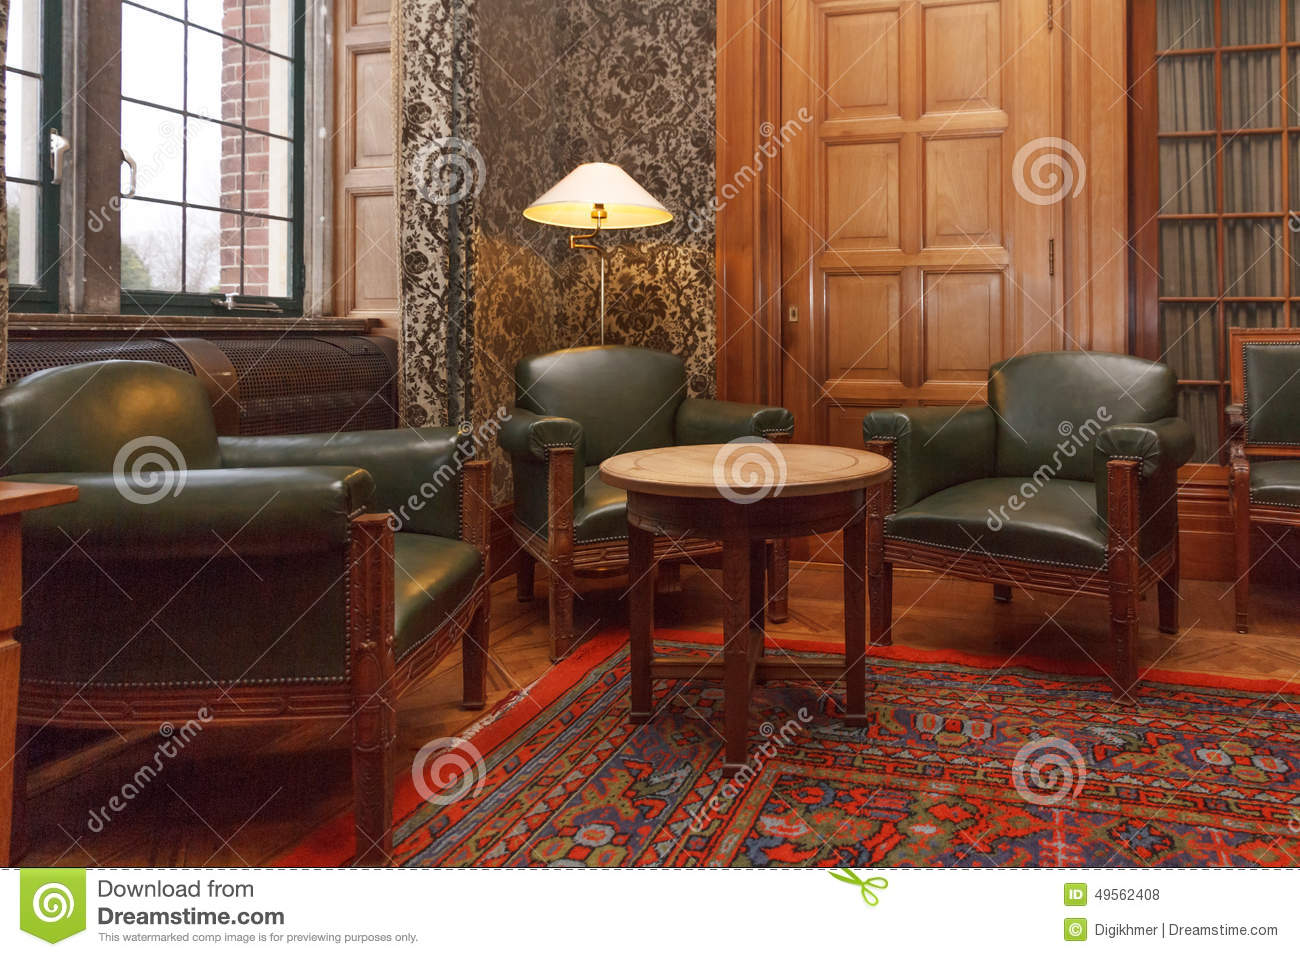 cosy vip meeting room stock photo - image: 49562408